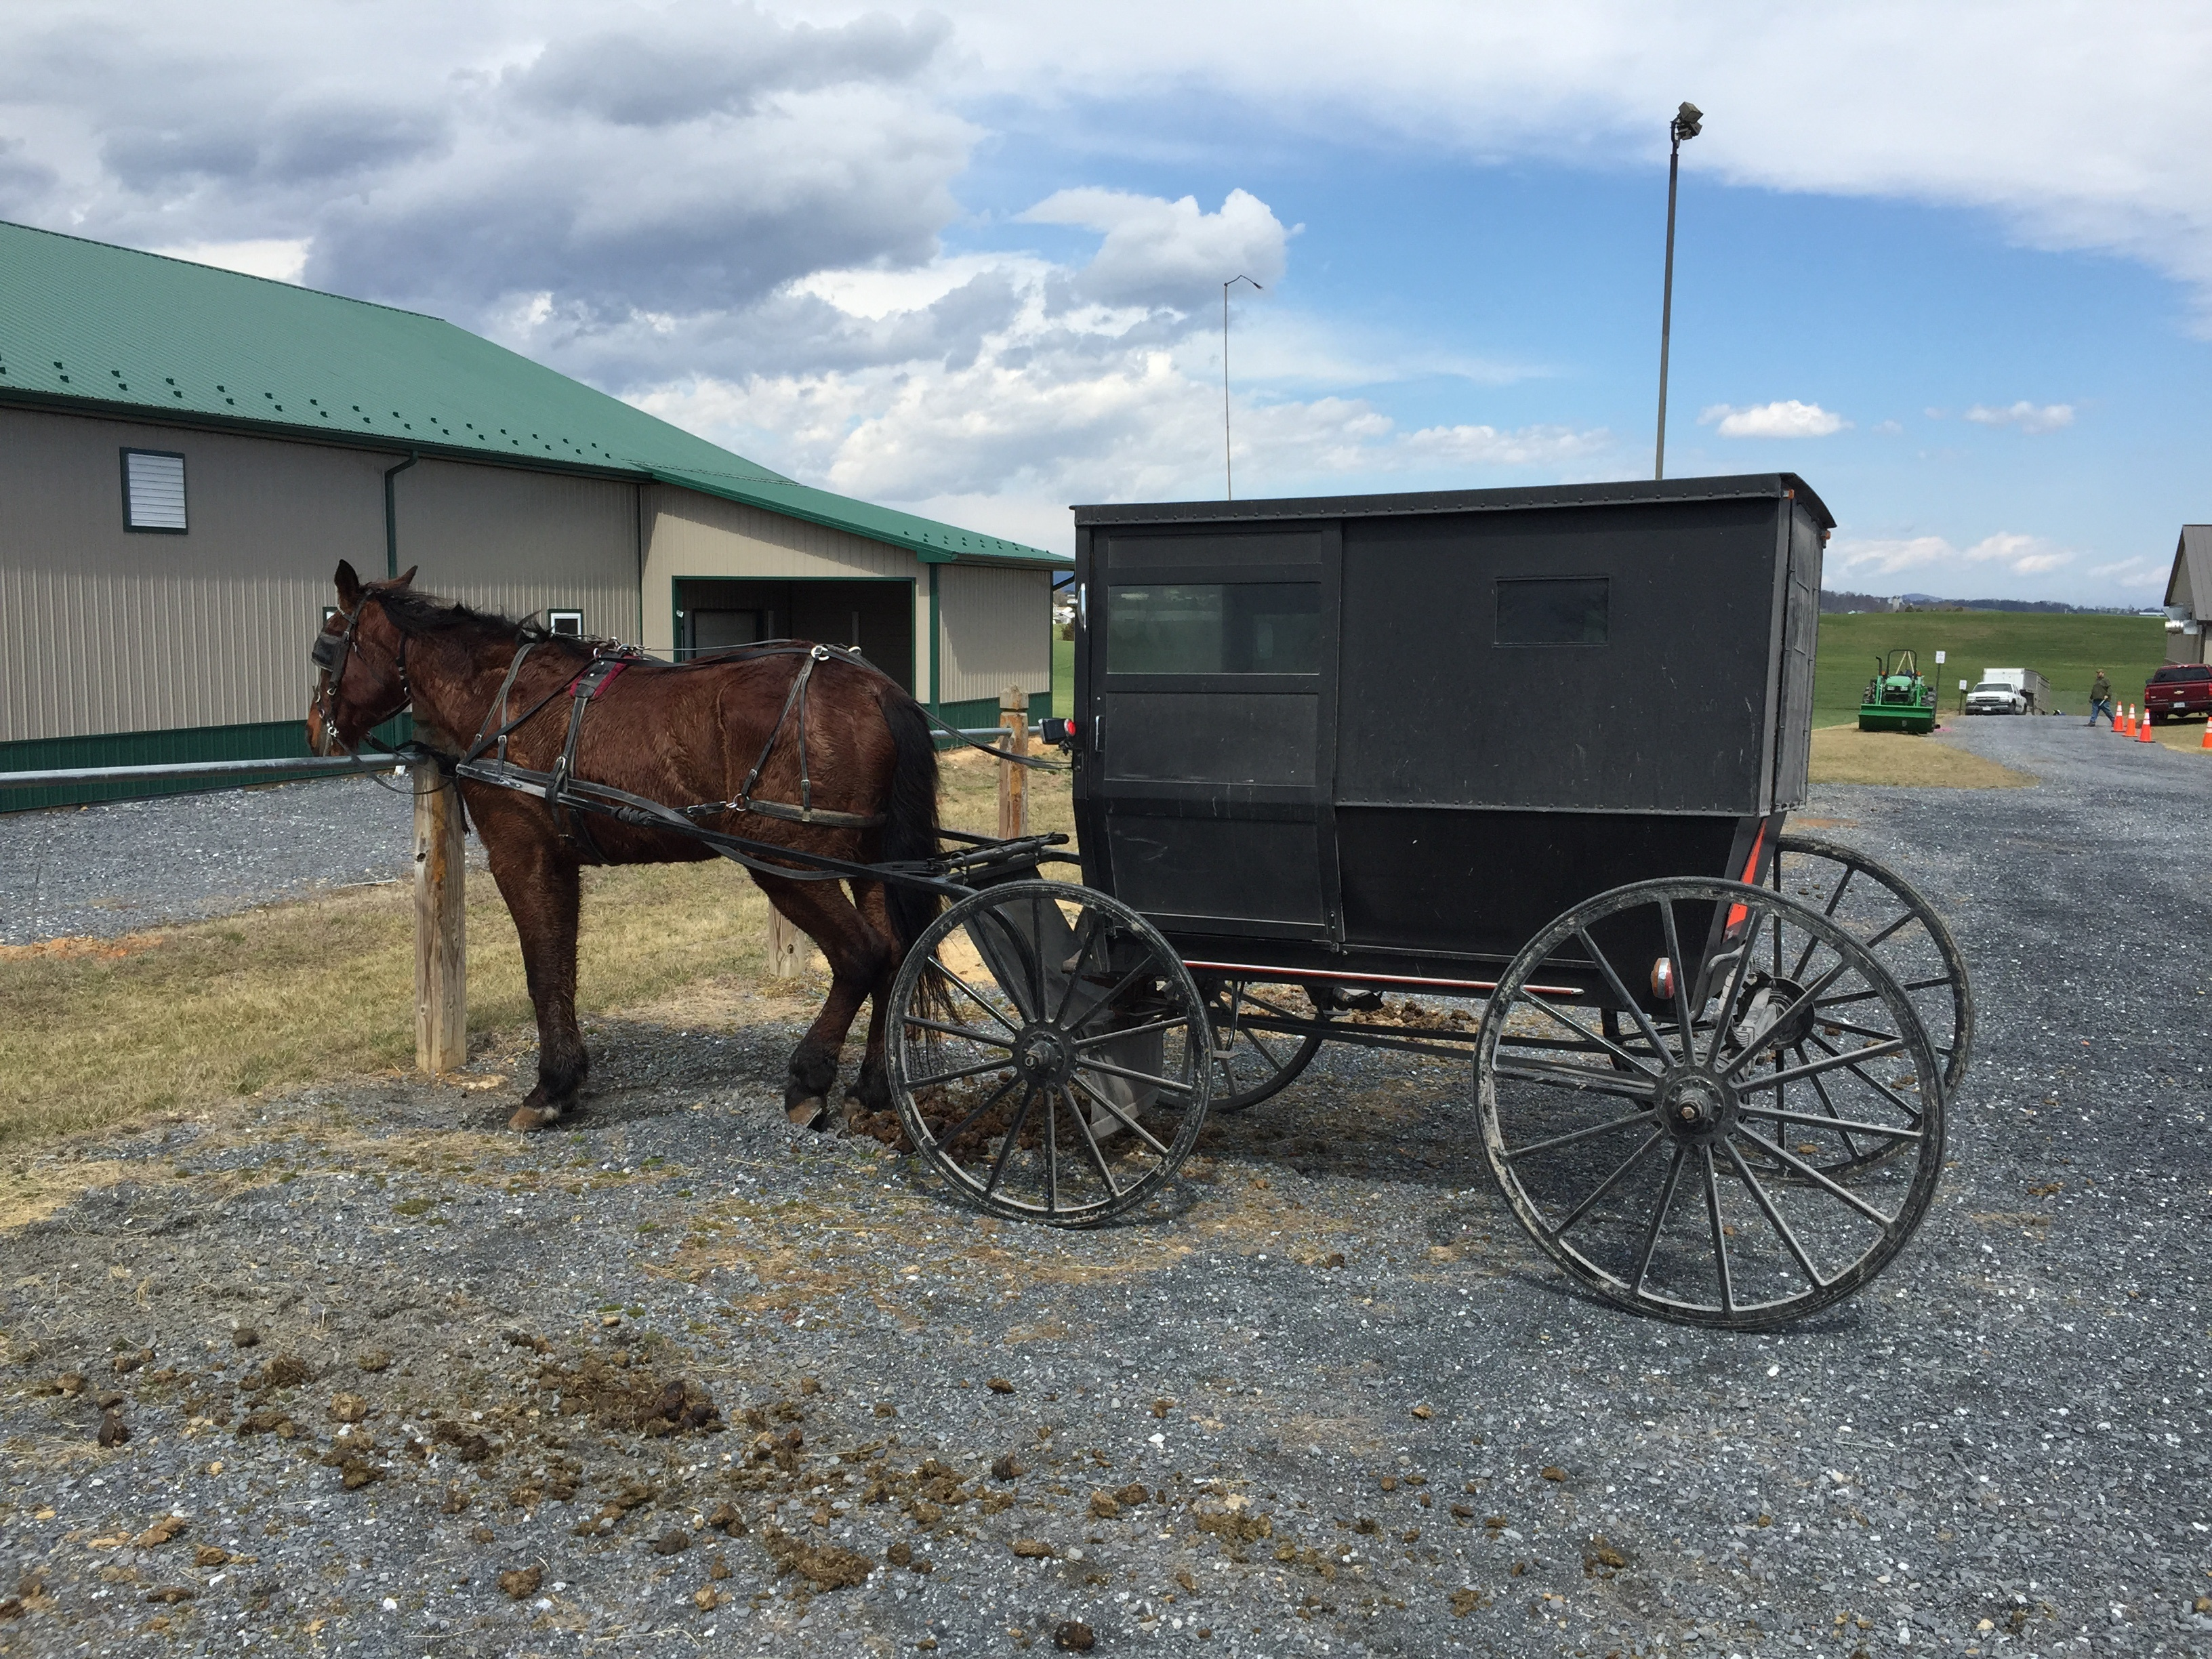 2017-03-18_13_17_22_Mennonite_horse_and_buggy_along_Limestone_Lane_(Virginia_State_Secondary_Route_737)_in_Stemphleytown,_Rockingham_County,_Virginia